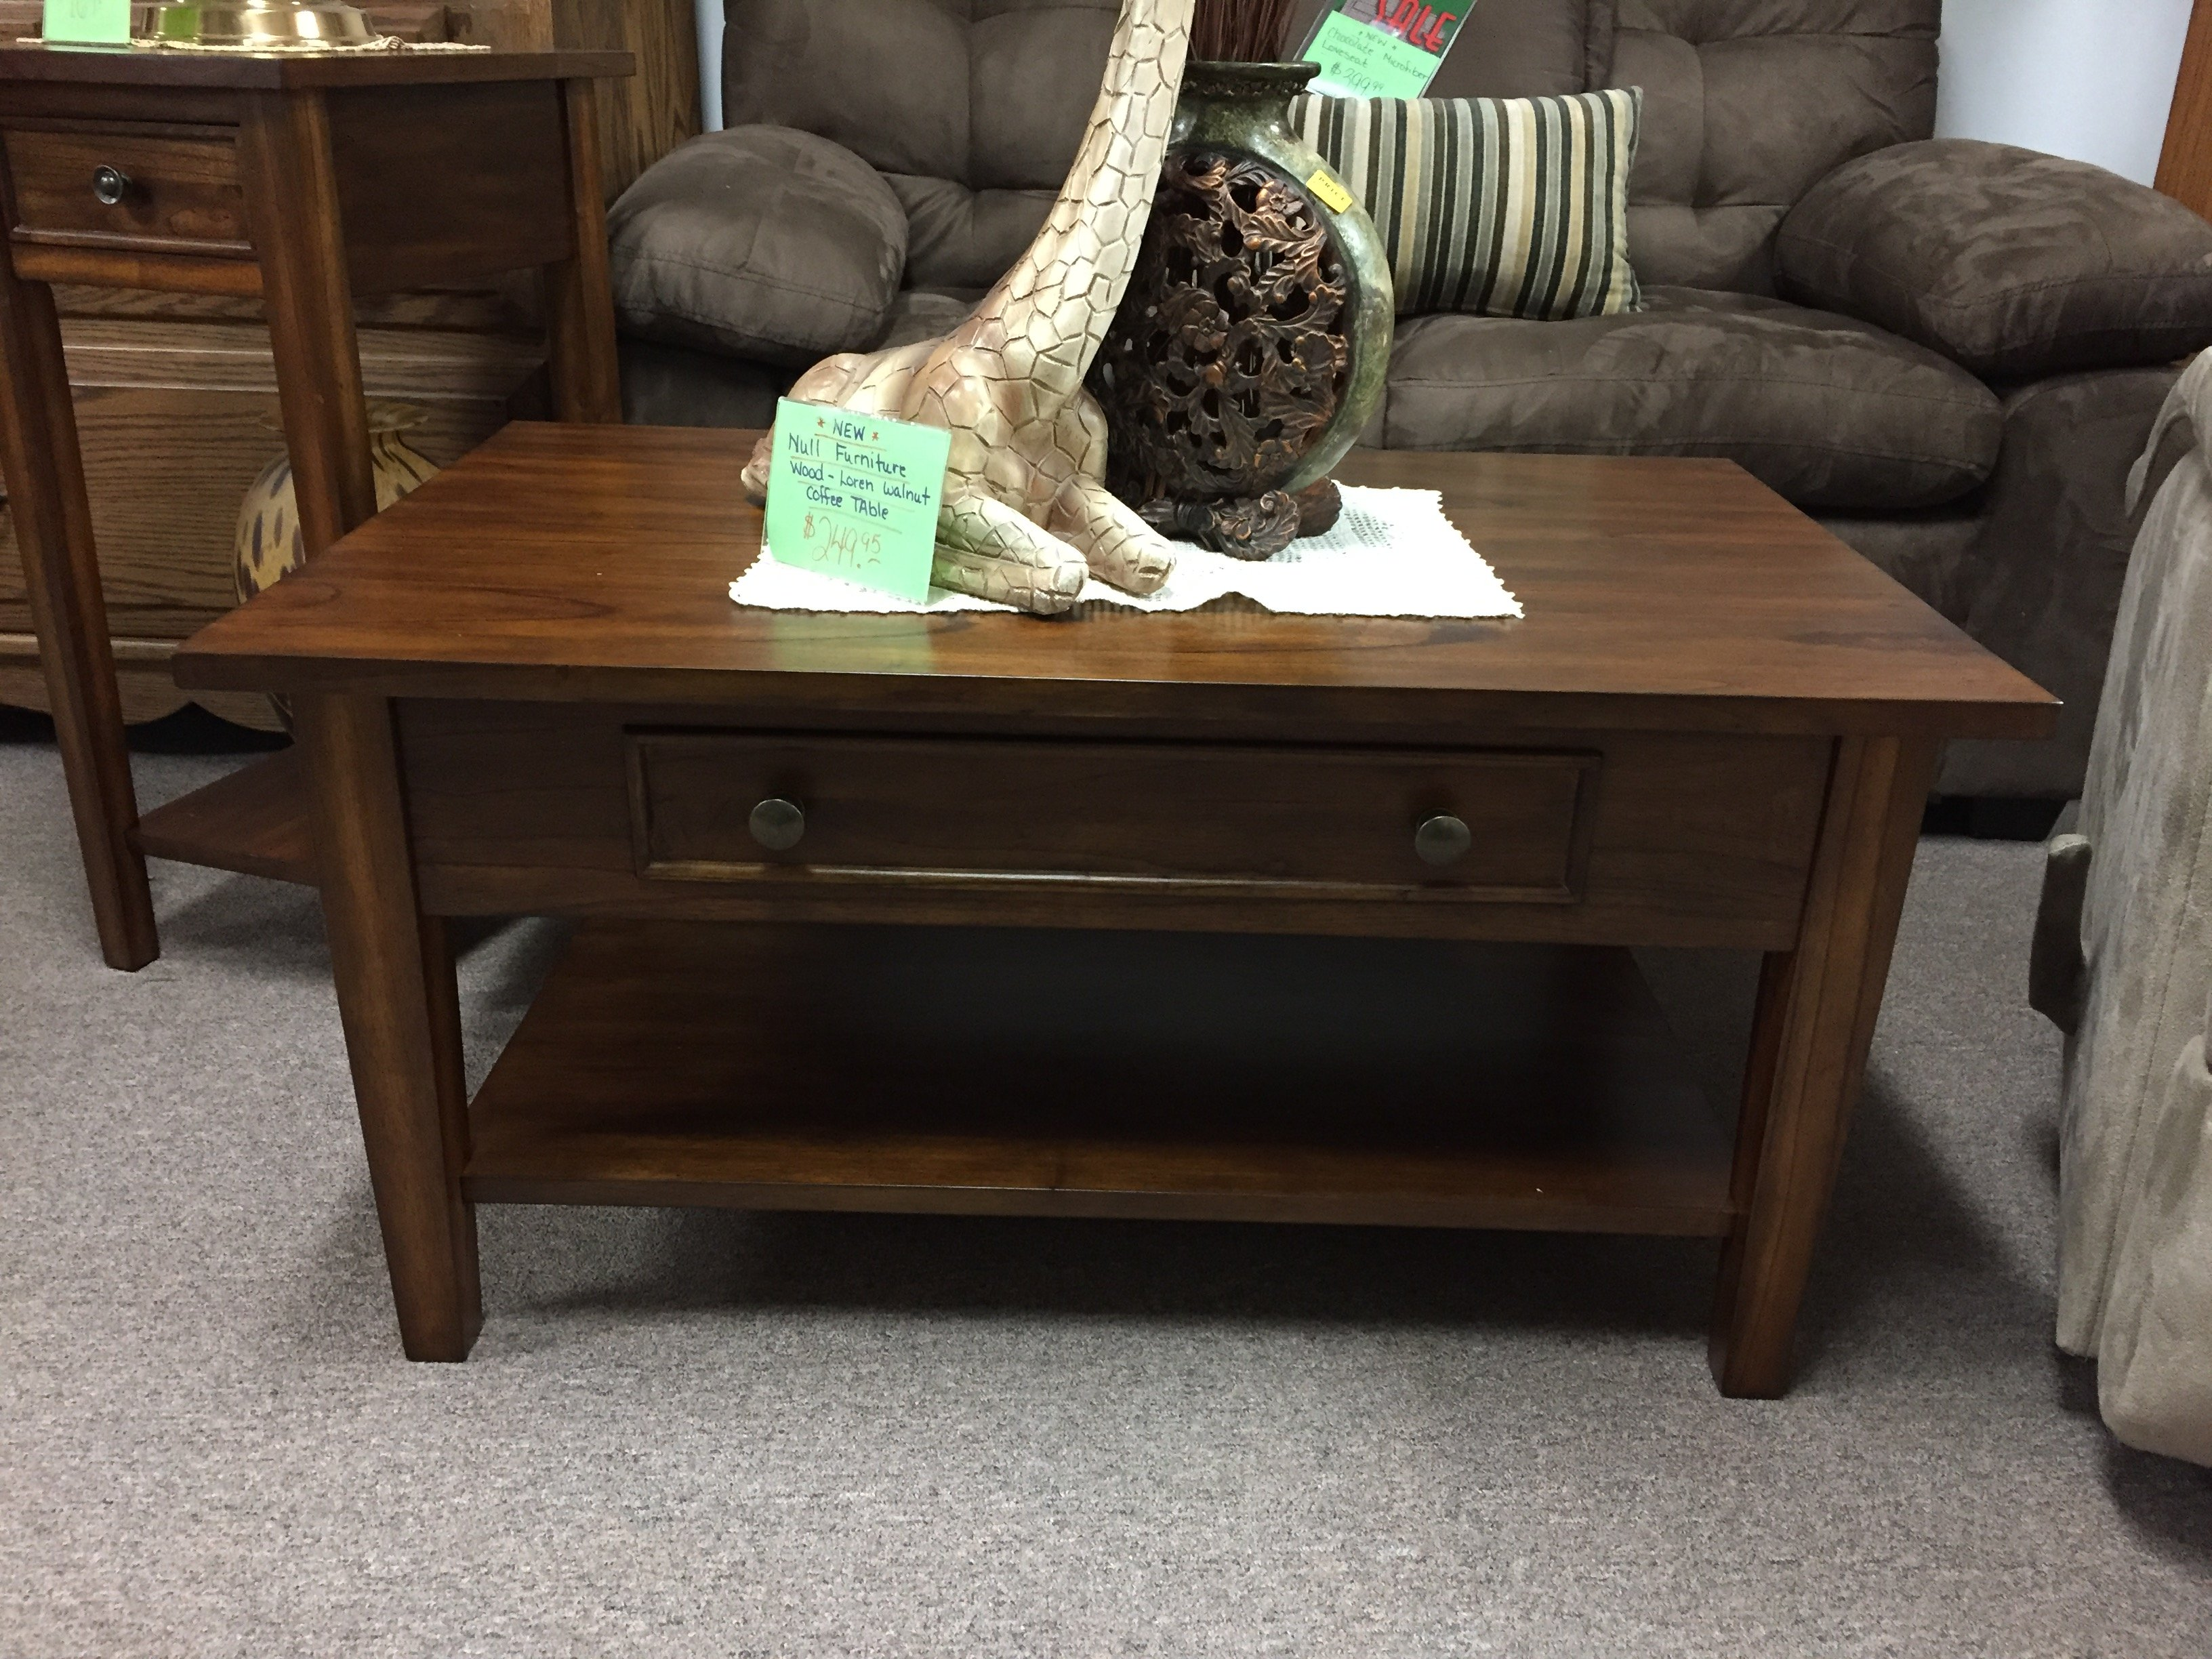 New Null Furniture Solid Wood Loren Walnut Coffee Table W/ Drawer $249.95